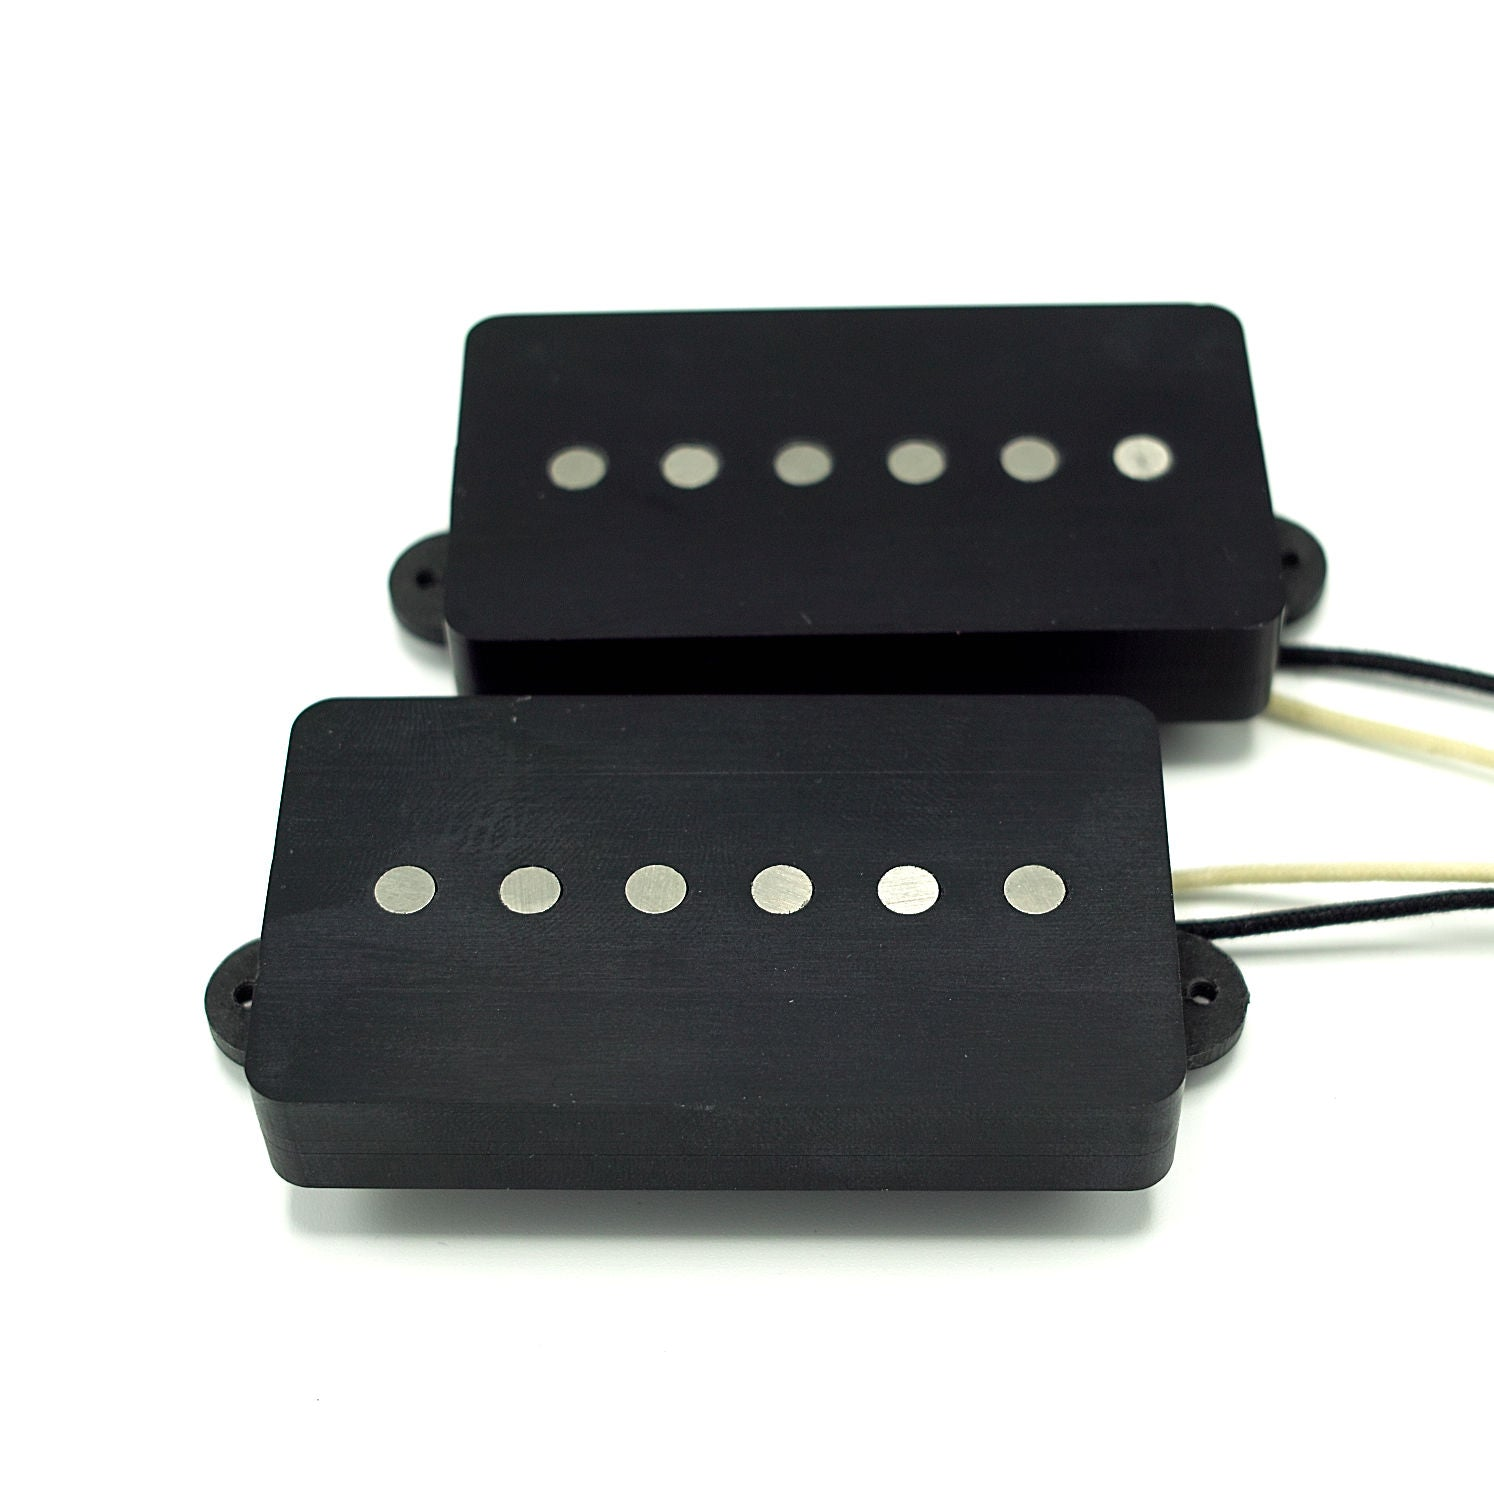 Bootstrap Skookum-90 Mean for Humbucker